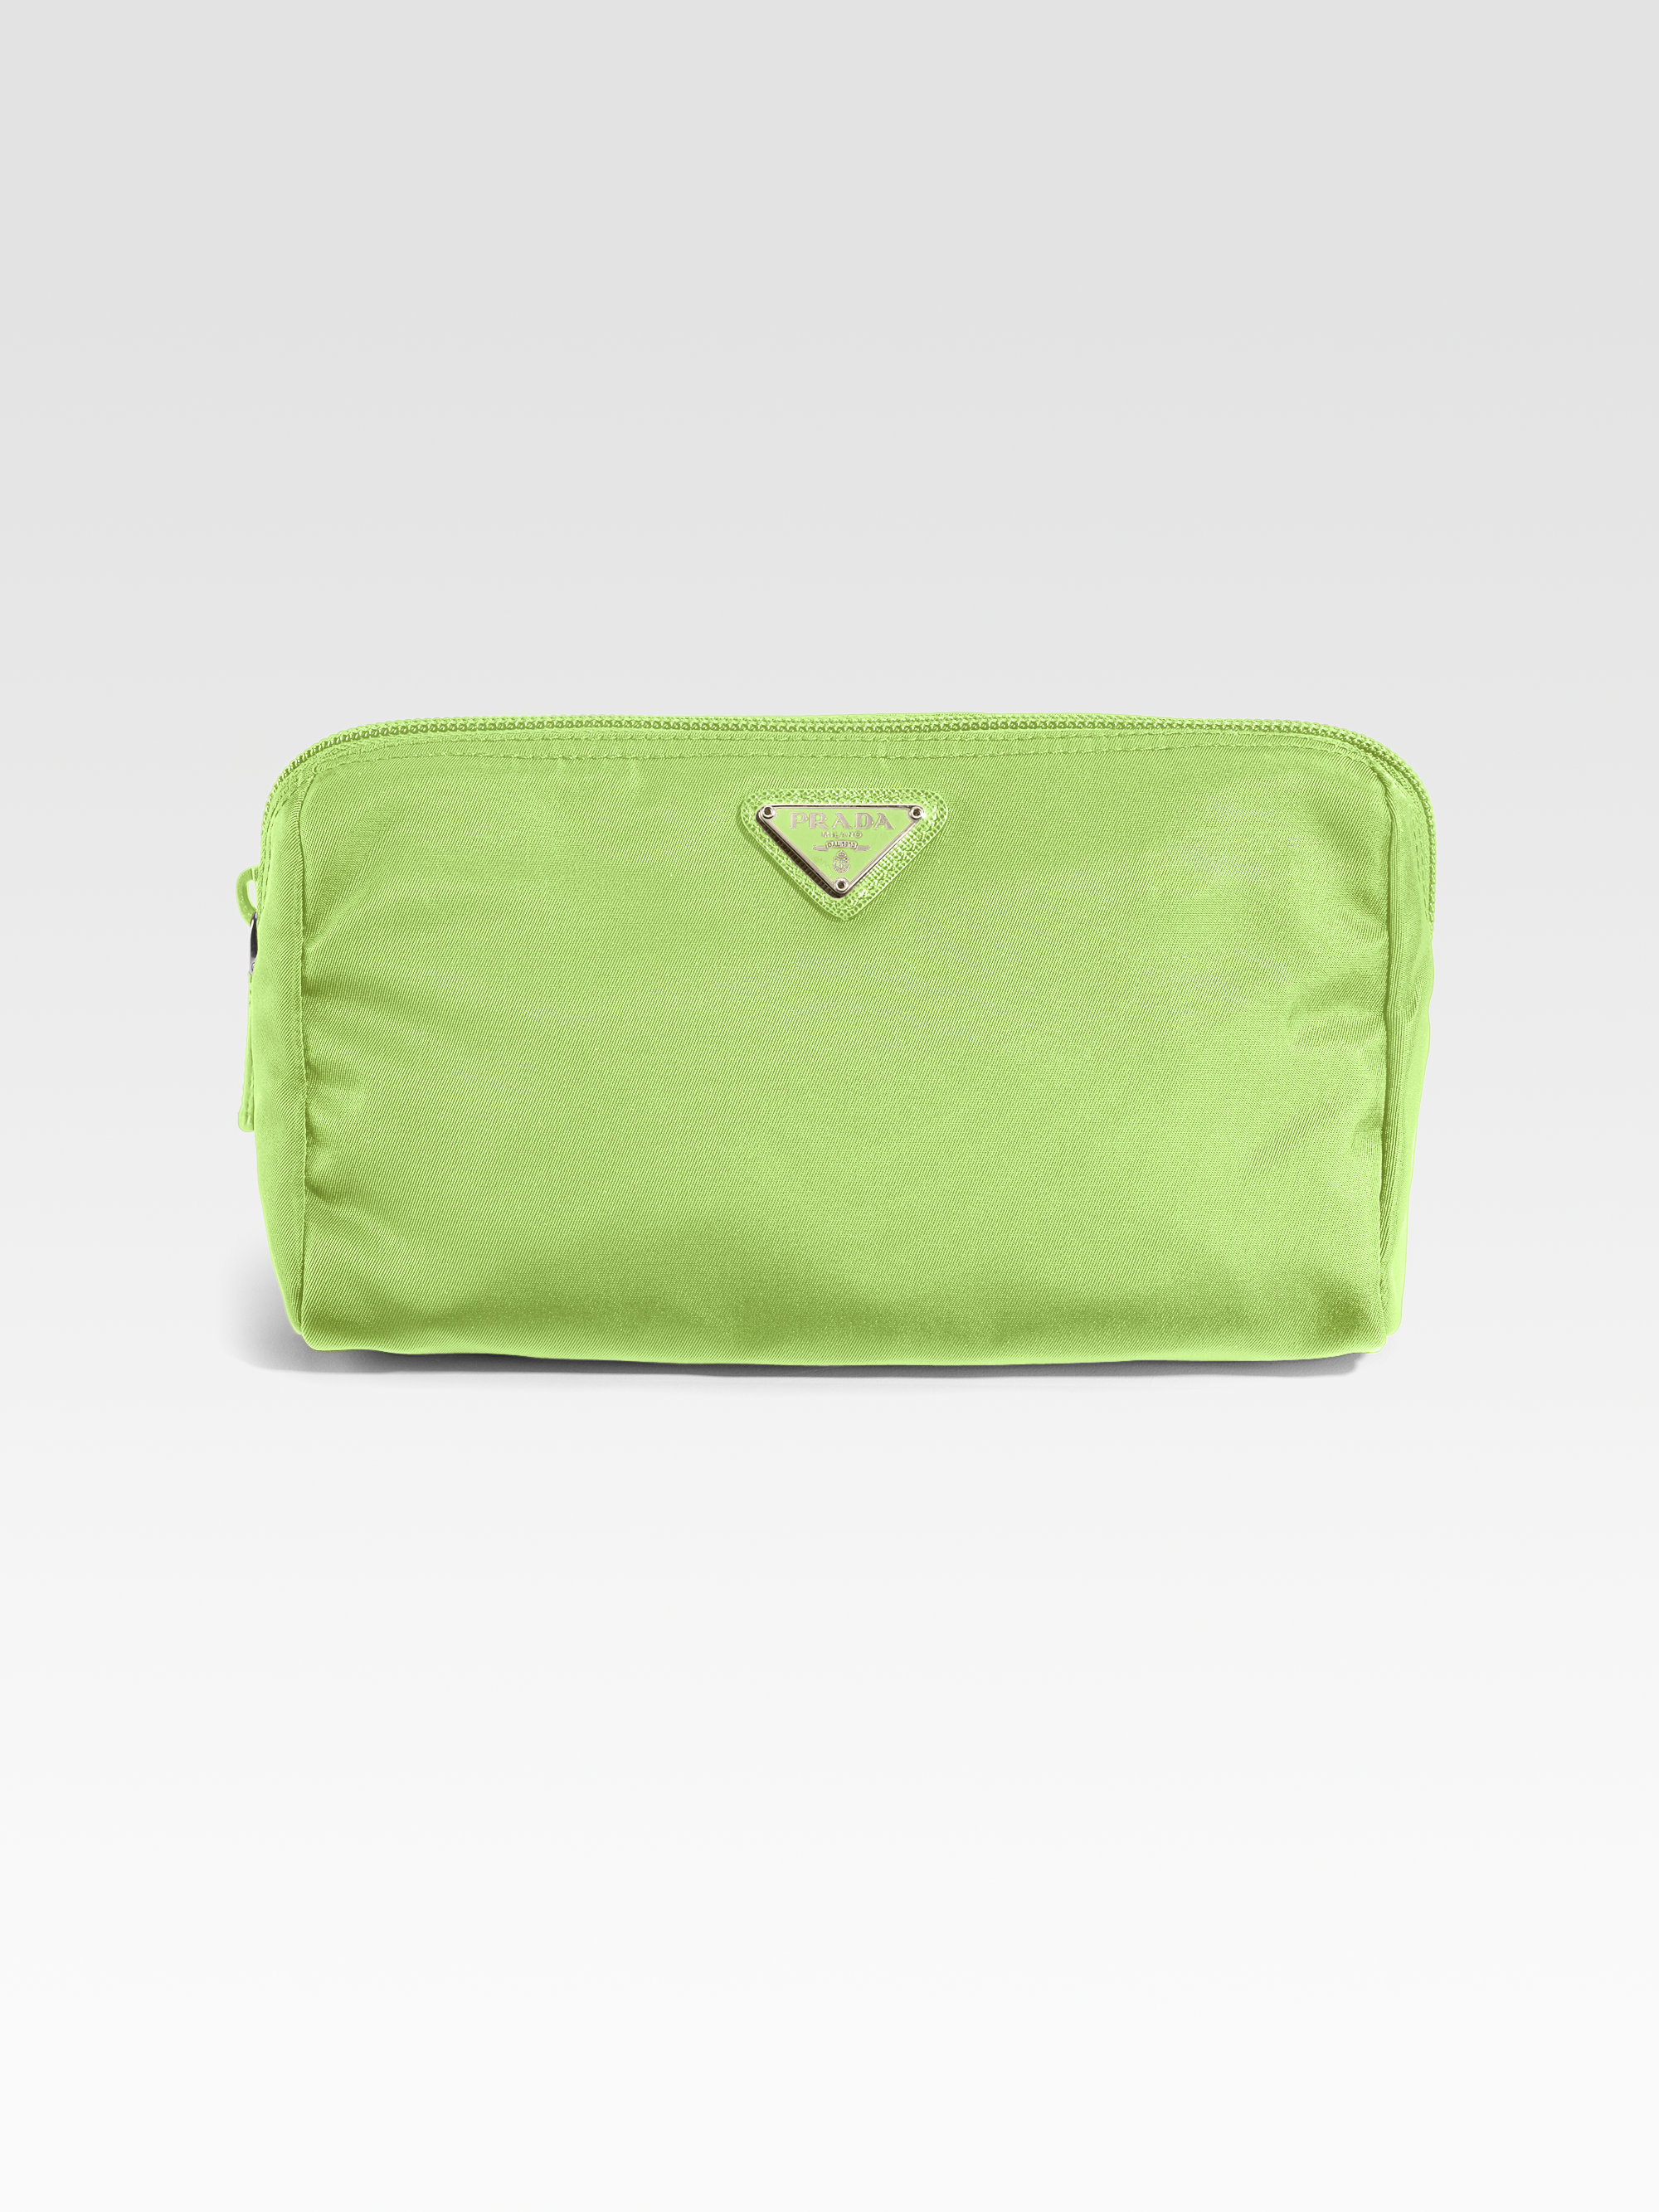 79ca282269f1 Prada Cosmetic Bag Sale | Stanford Center for Opportunity Policy in ...